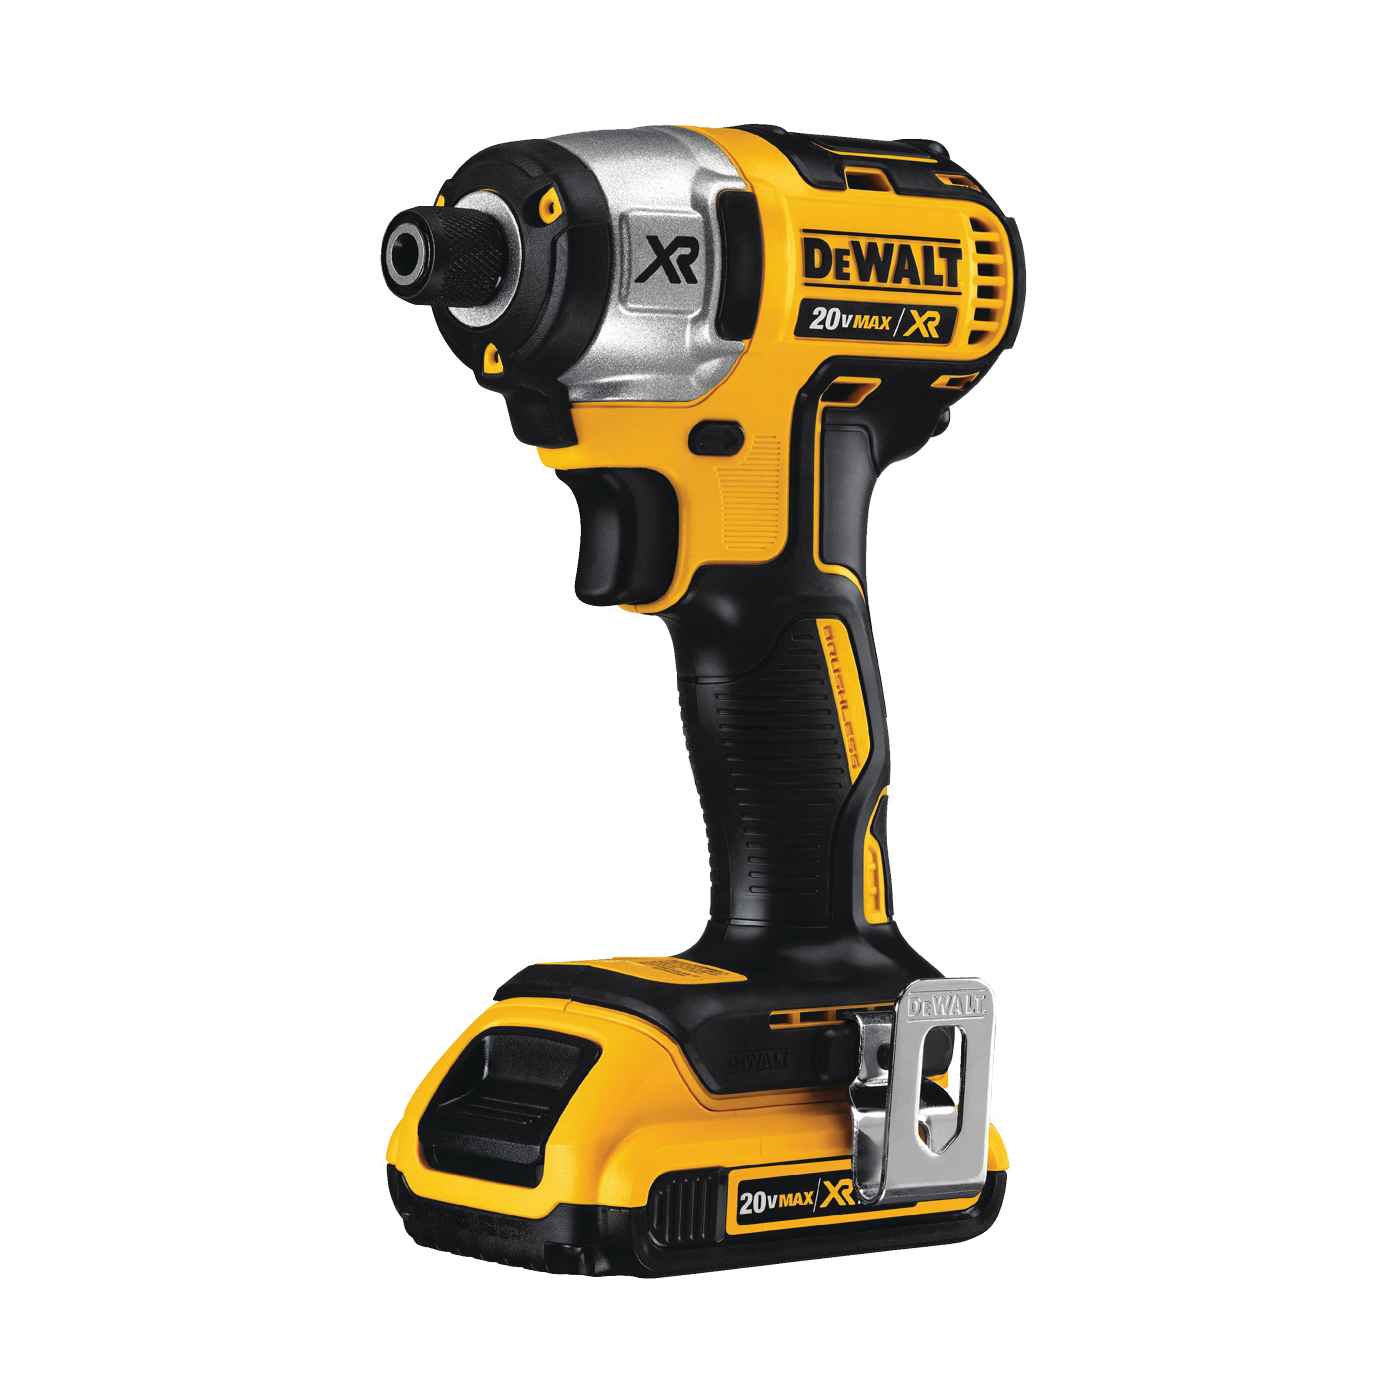 Picture of DeWALT DCF887D2 Impact Driver Kit, Kit, 20 V Battery, 2 Ah, 1/4 in Drive, Hex Drive, 3600 ipm IPM